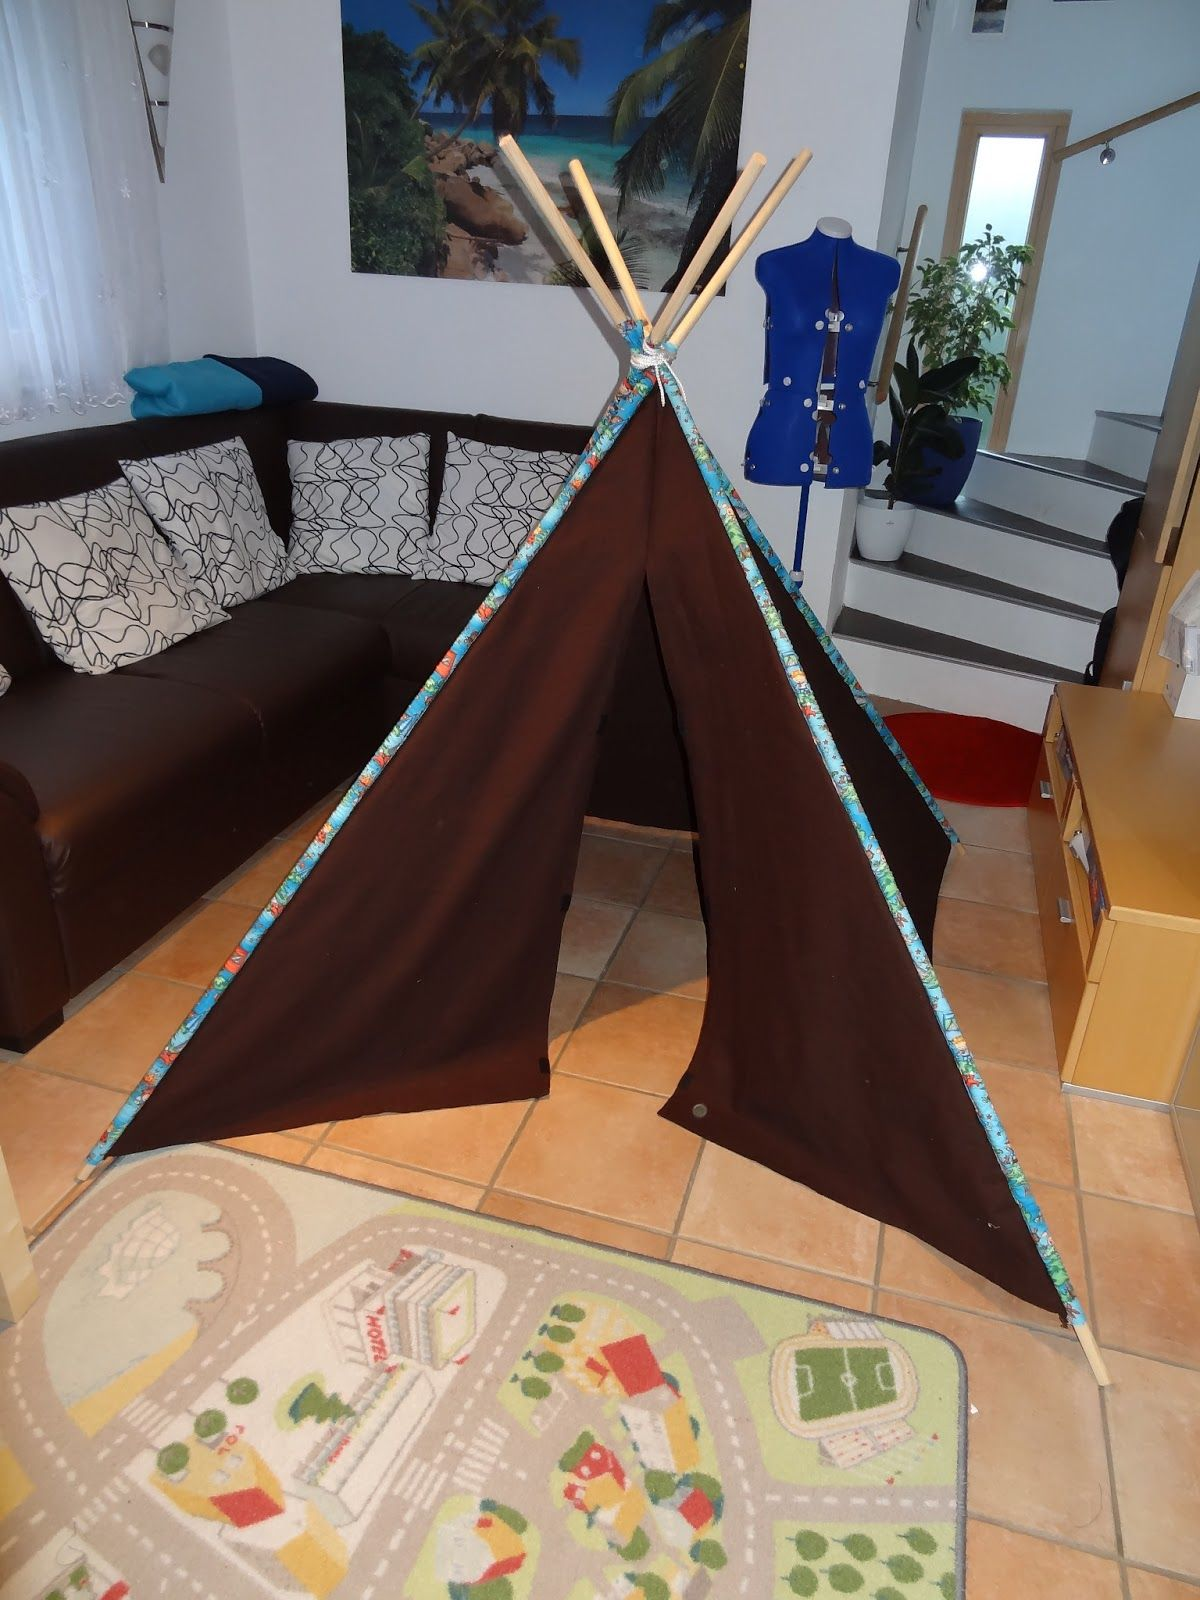 alefe 39 s blog tipi indianerzelt teepee zelt wigwam eine anleitung pinterest tipi. Black Bedroom Furniture Sets. Home Design Ideas